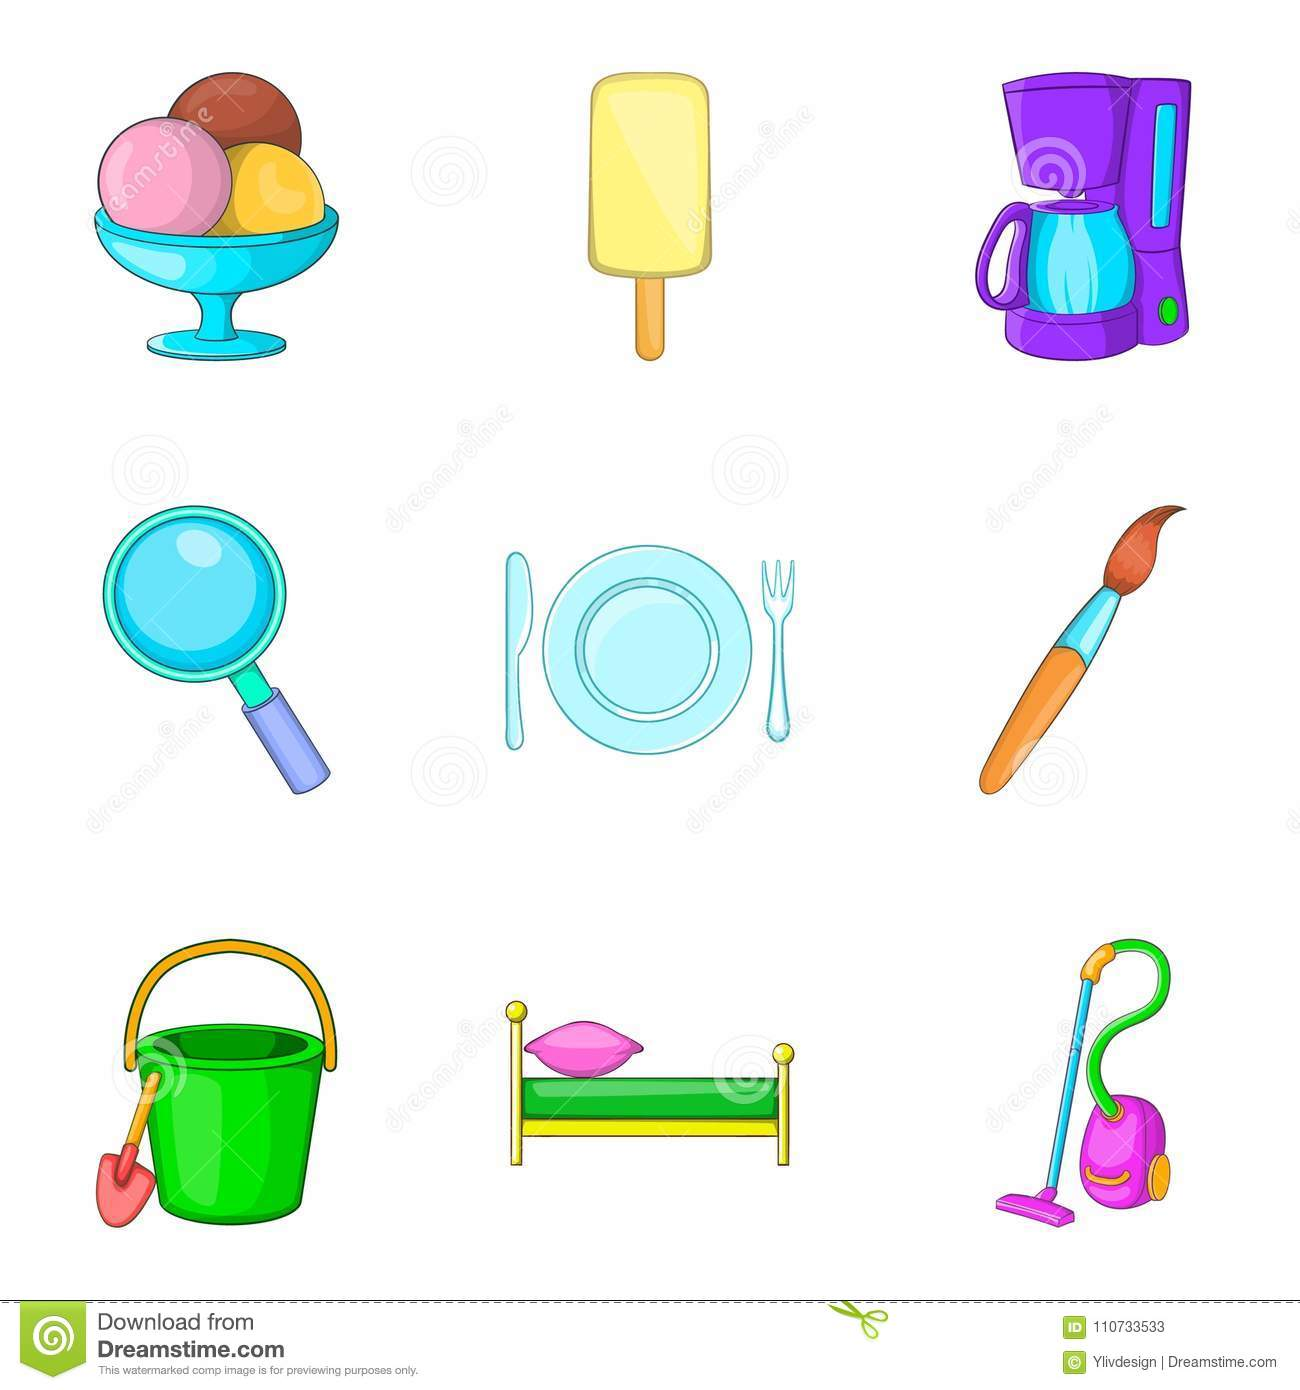 Household articles icons set, cartoon style